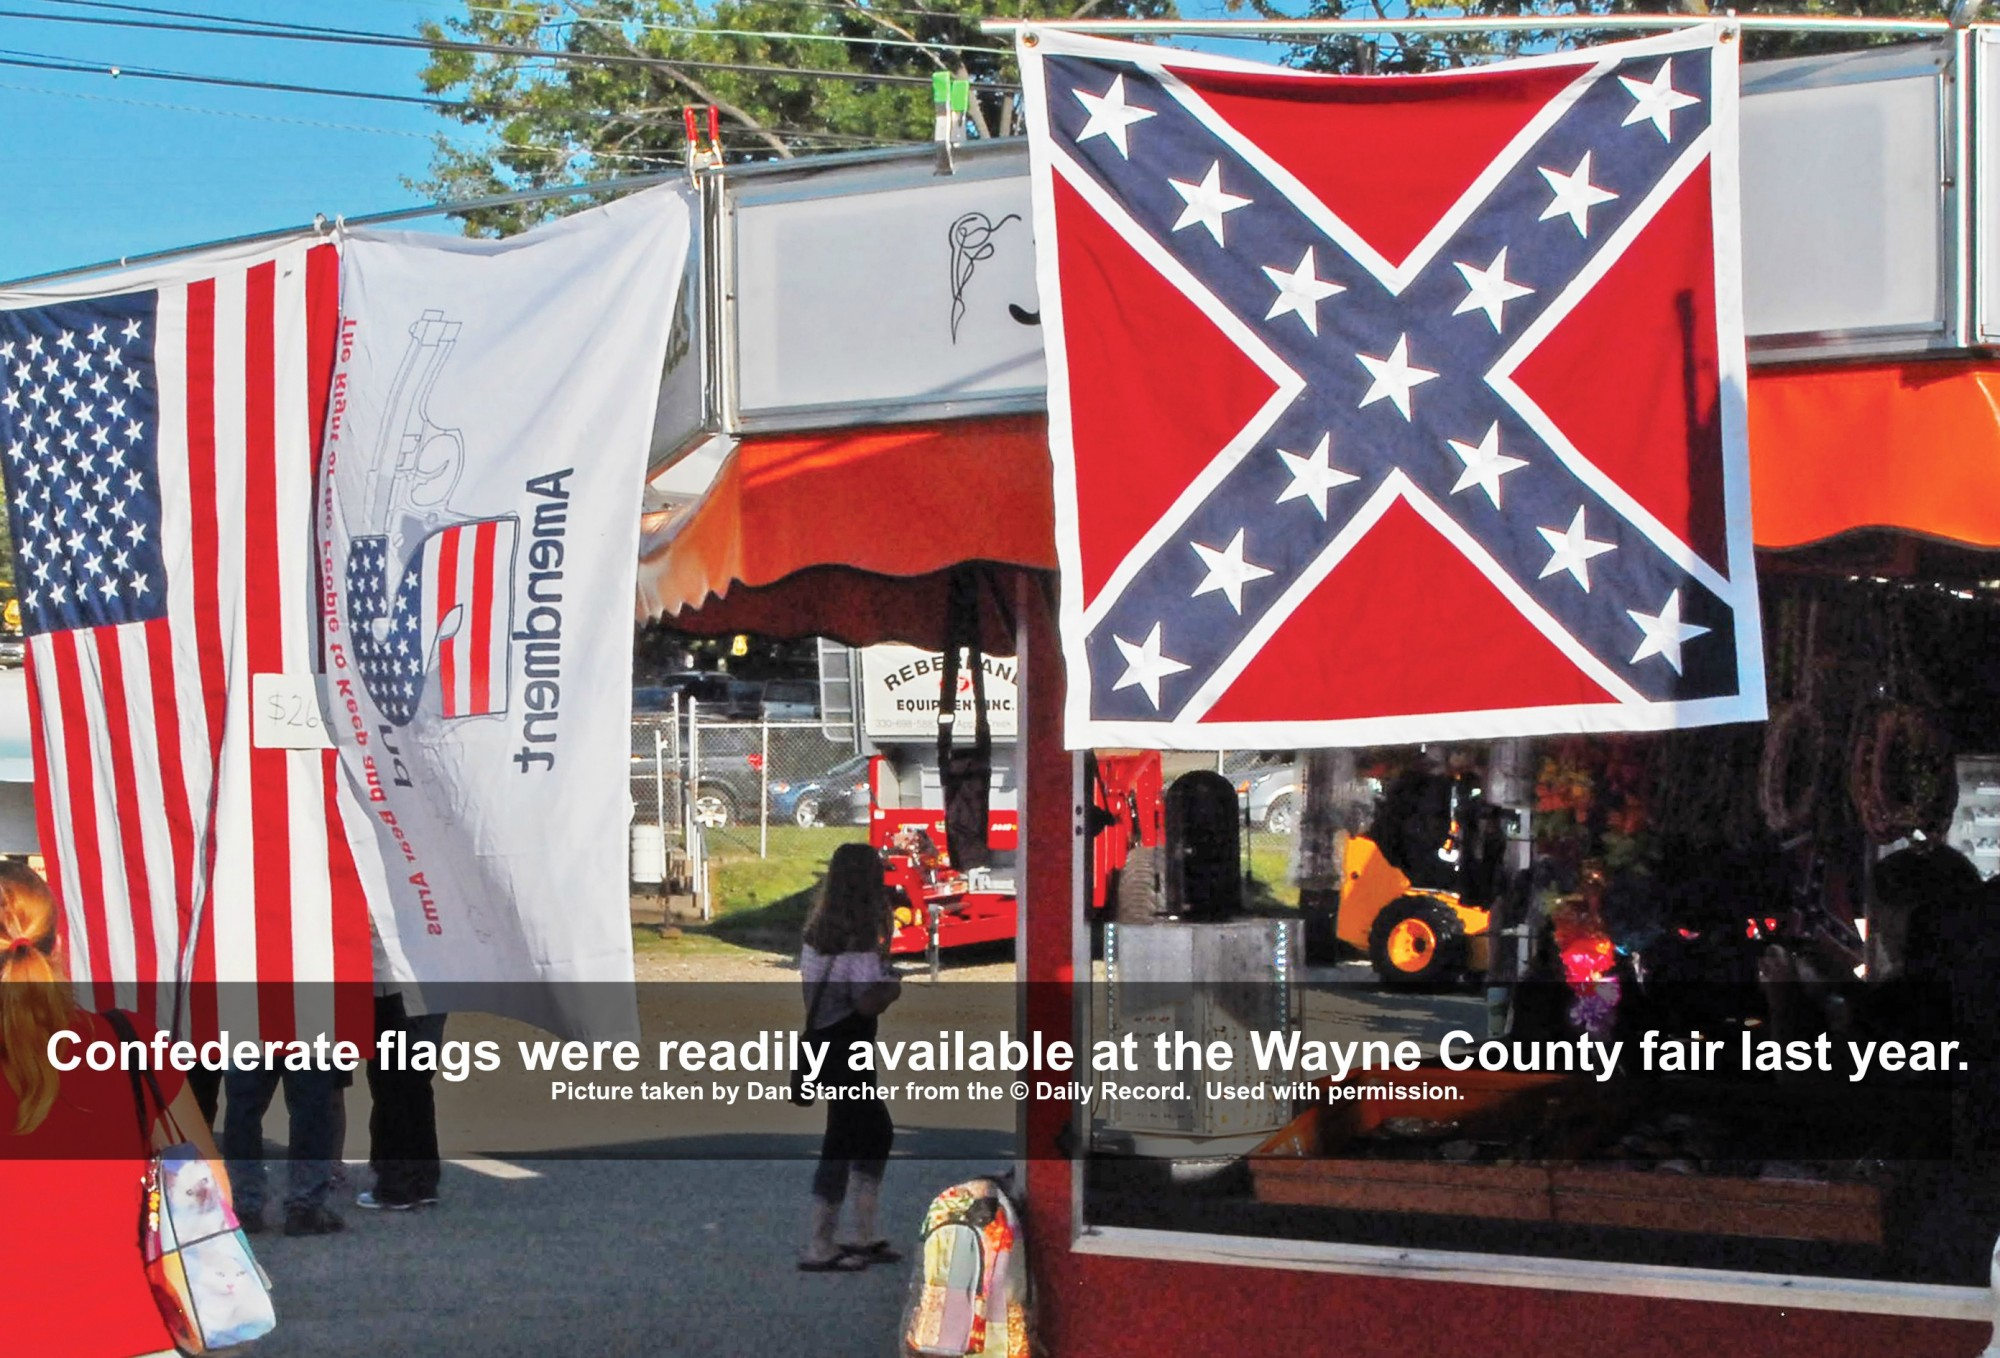 Progress in Struggle for Racial Justice at the Wayne County Fair